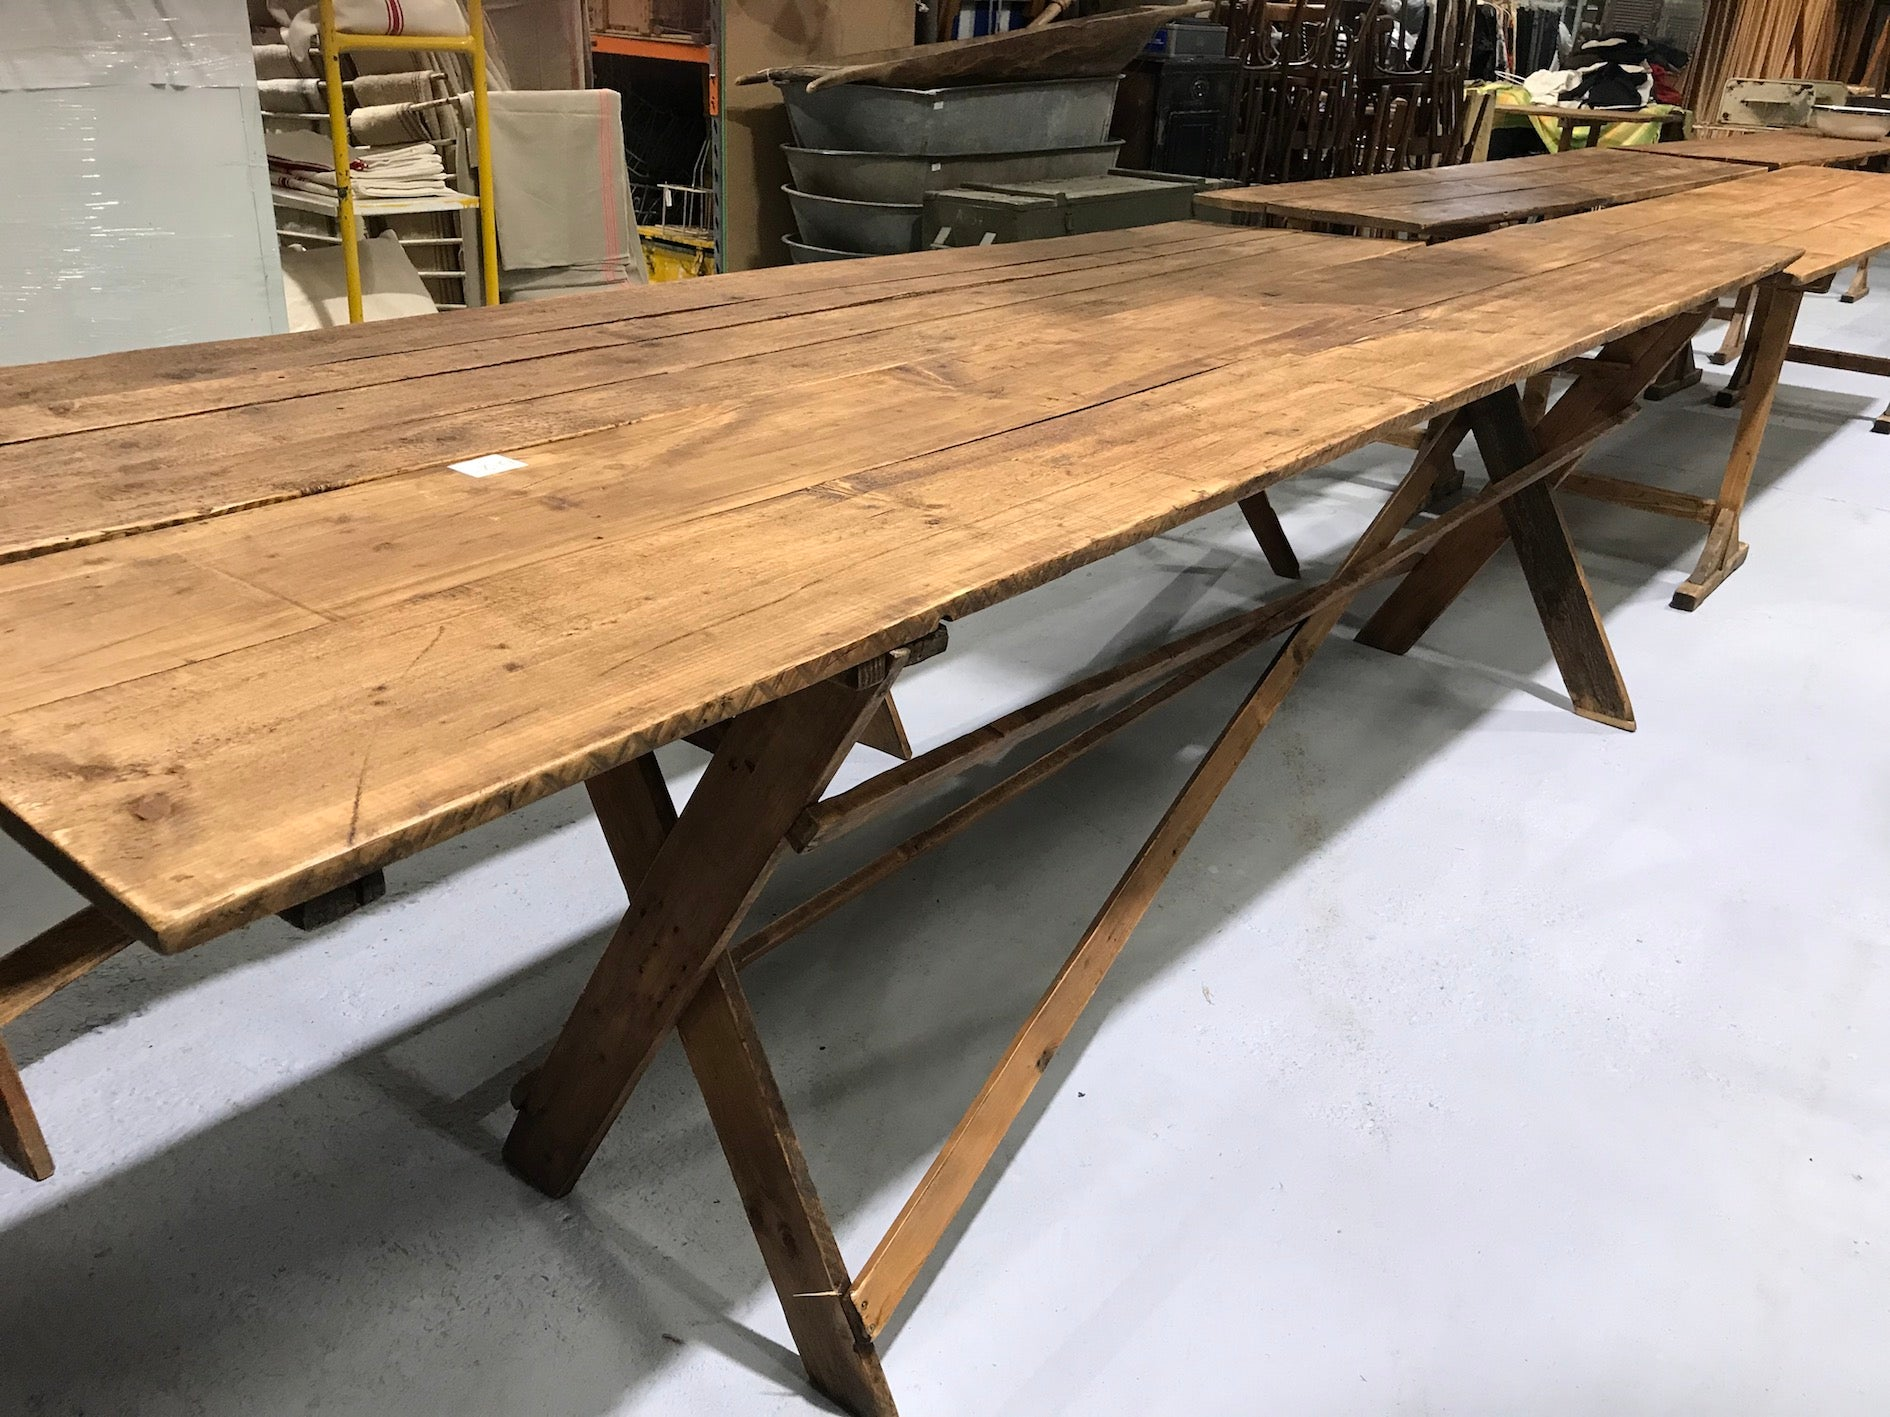 Vintage industrial European kitchen farmhouse dining table 3.5 long #1959 in Byron shop